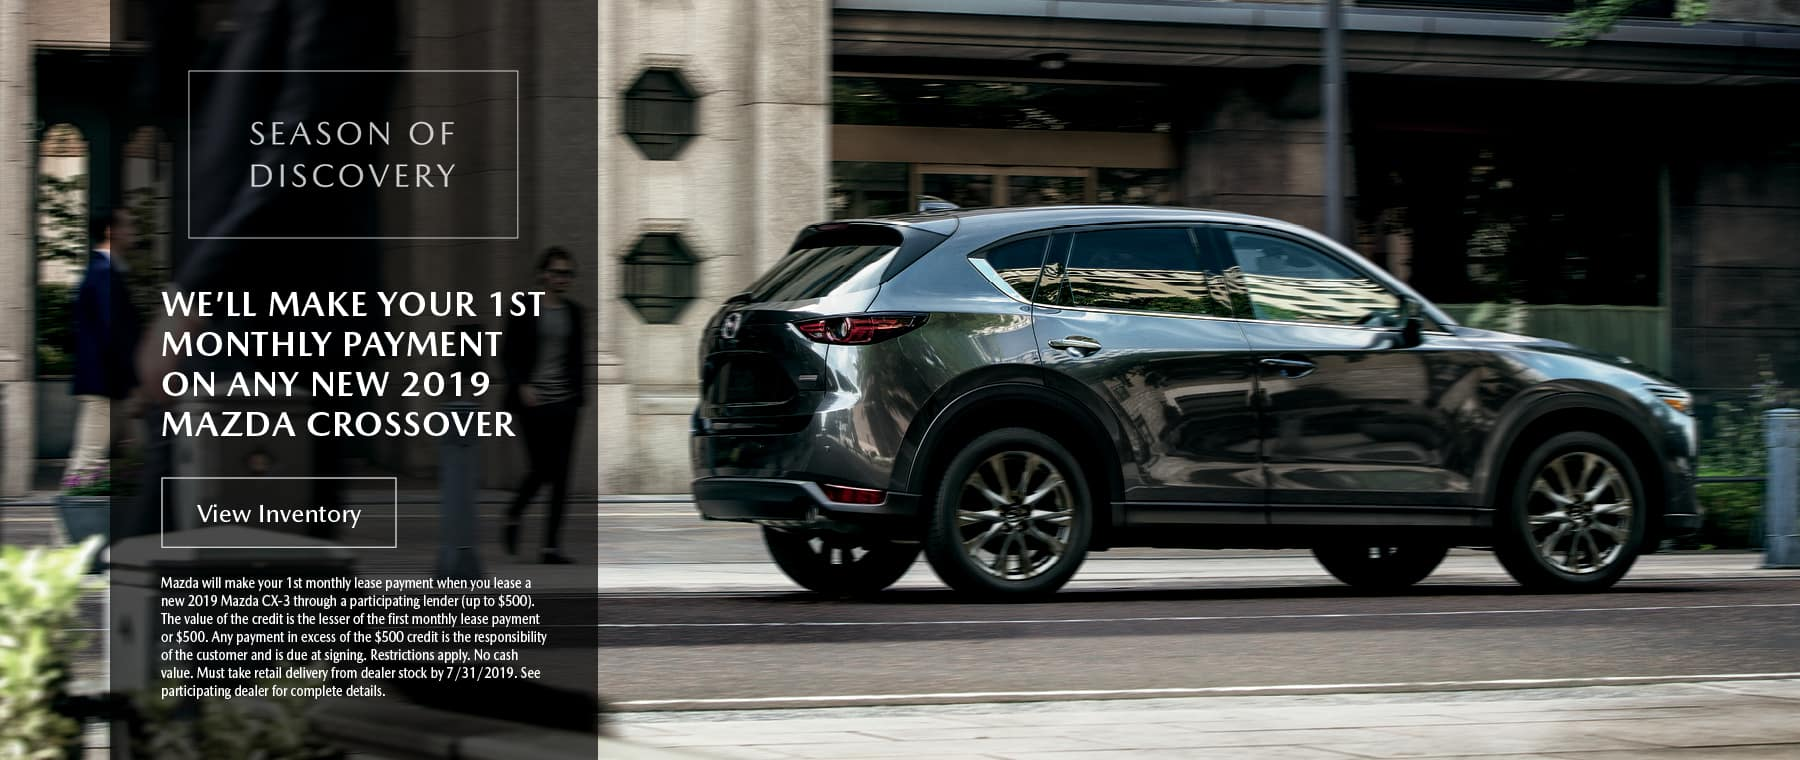 WE'LL MAKE YOUR 1ST MONTHLY PAYMENT ON ANY NEW 2019 MAZDA CROSSOVER